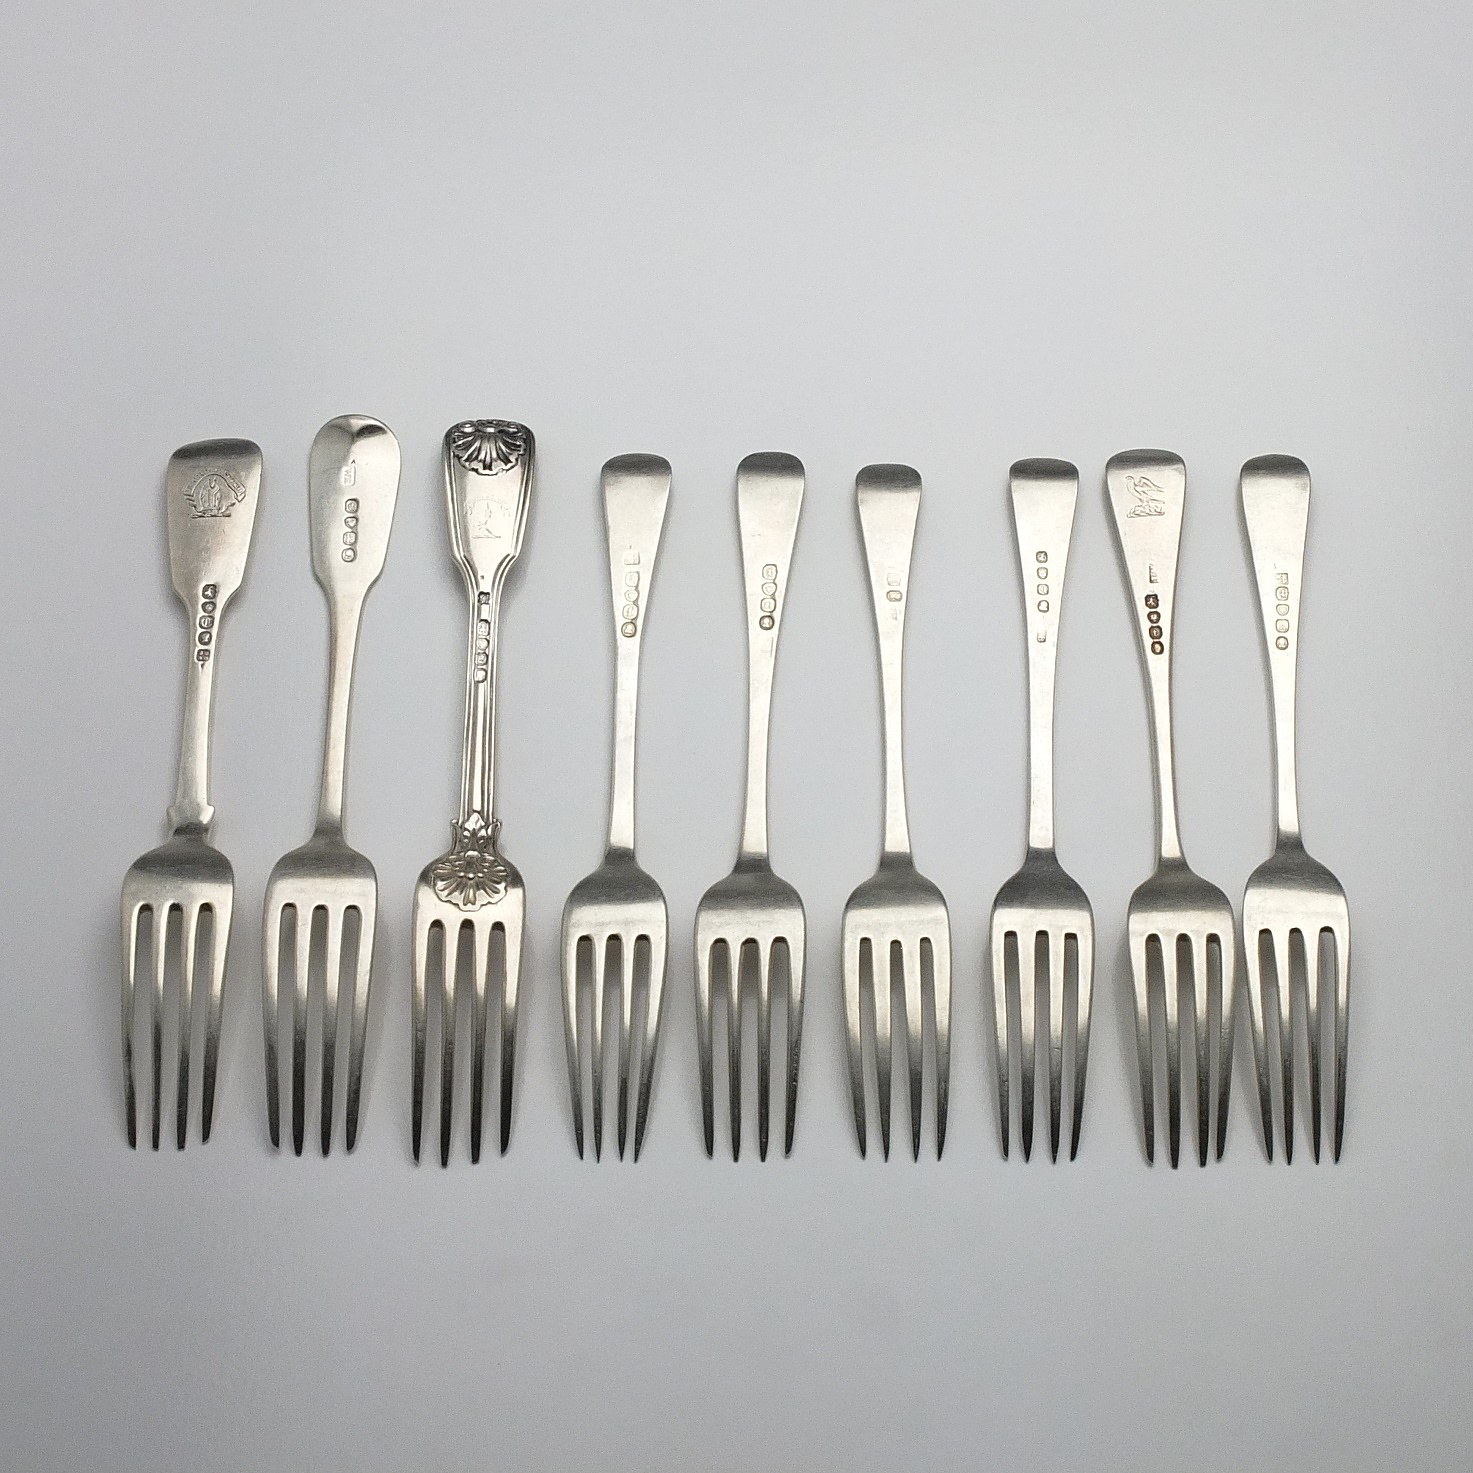 'Nine Various Georgian and Victorian Sterling Silver Entree Forks, Including London 1828, 1823, 1821, 1816, 1838, 1794 and More'